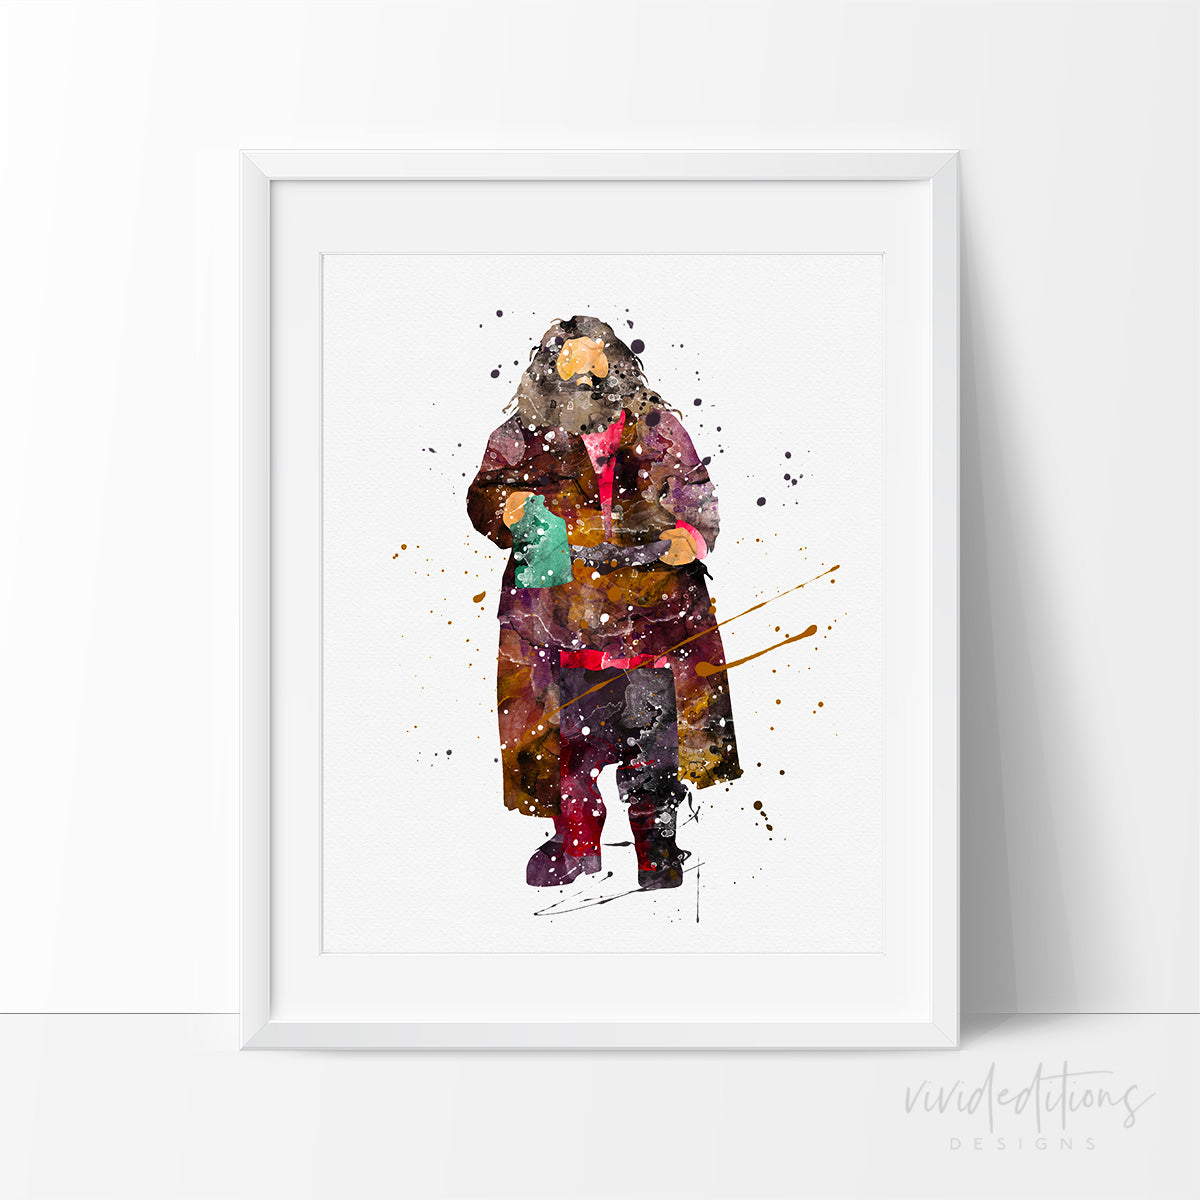 Rubeus Hagrid, Harry Potter Watercolor Art Print Art Print - VIVIDEDITIONS